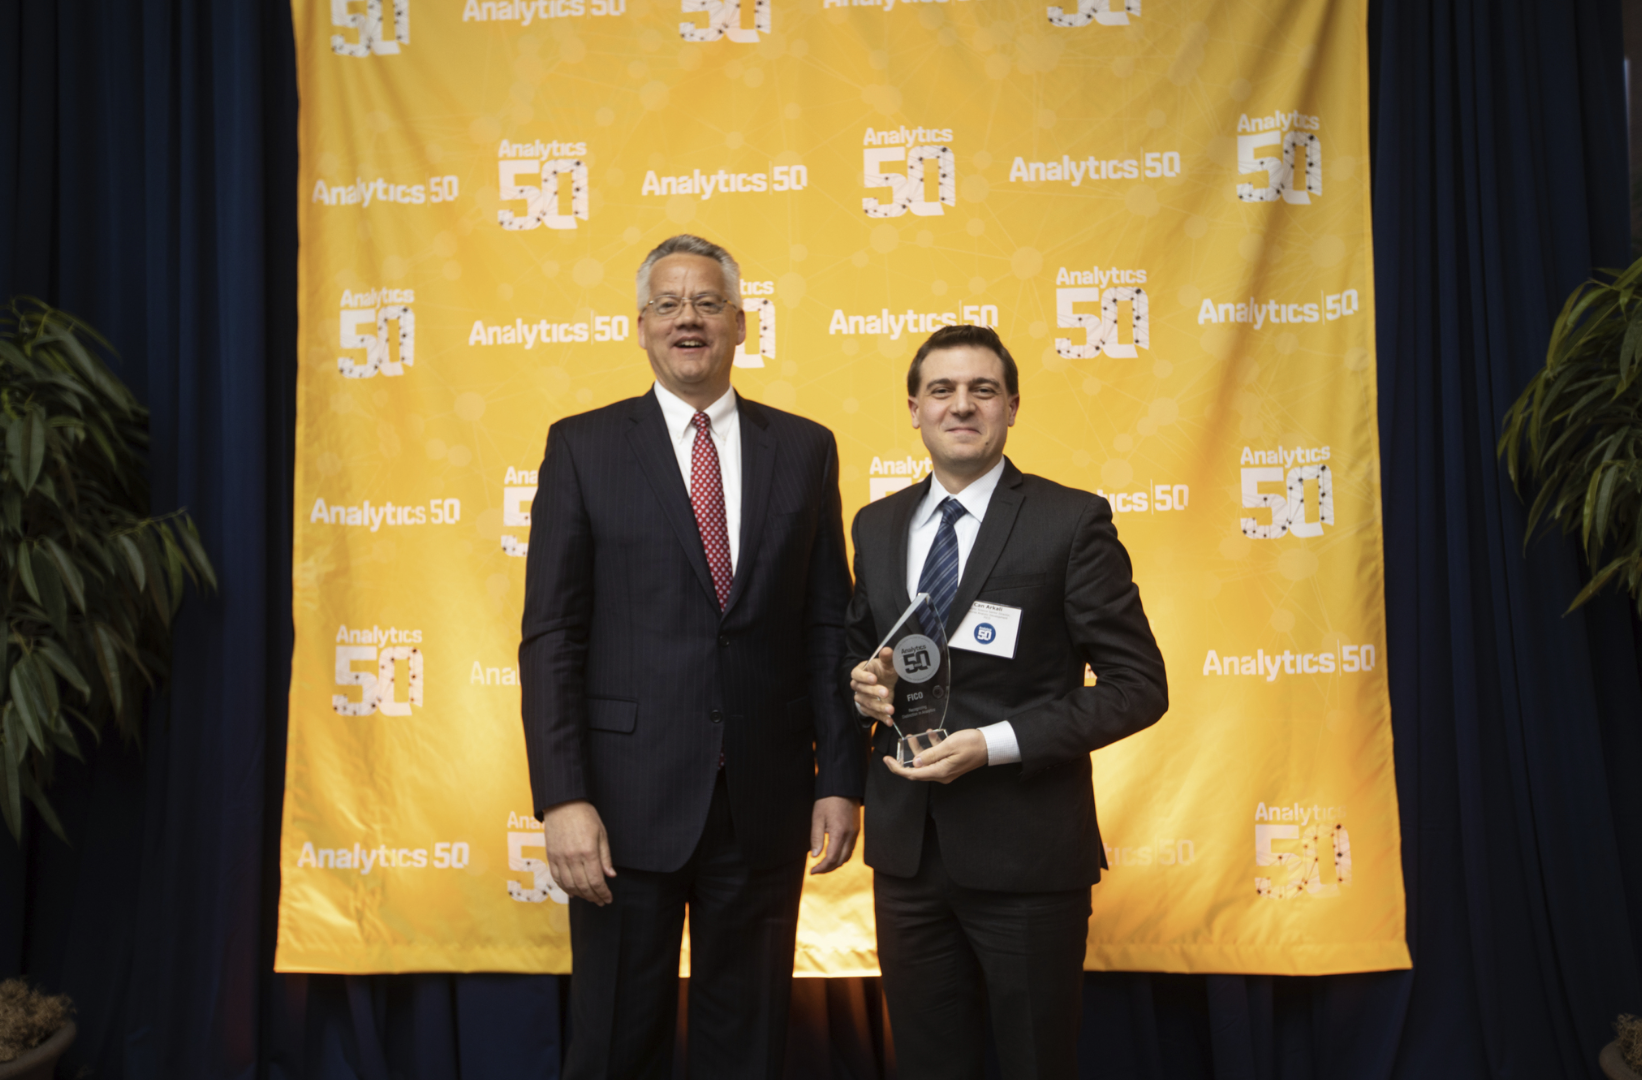 Screen Shot 2019 06 03 at 4.08.51 PM FICO Awarded Drexel LeBow Analytics 50 Award for the FICO Safe Driving Score